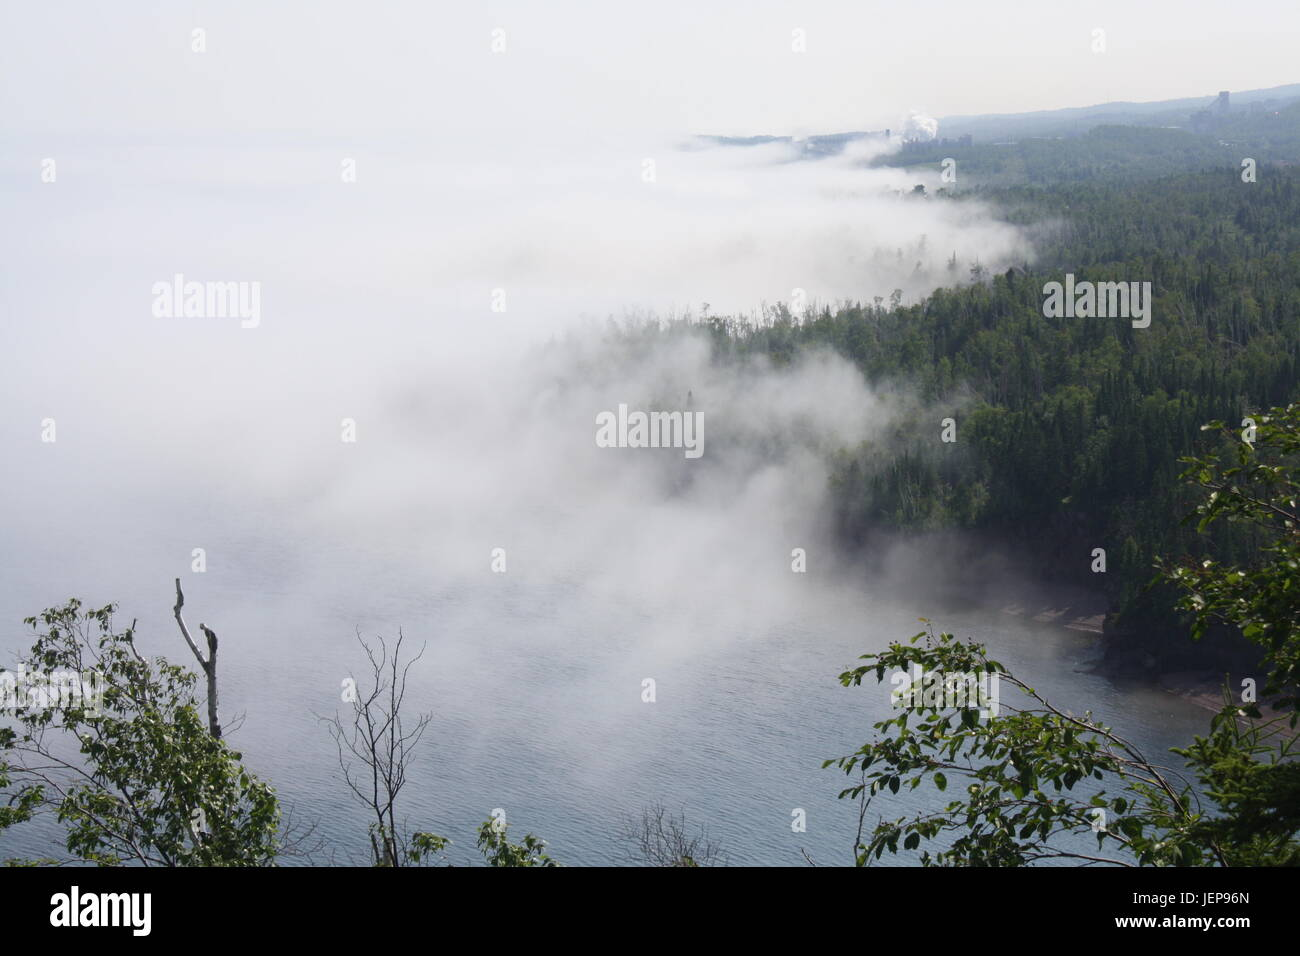 The thick ghostly white fog creeps over the trees. - Stock Image